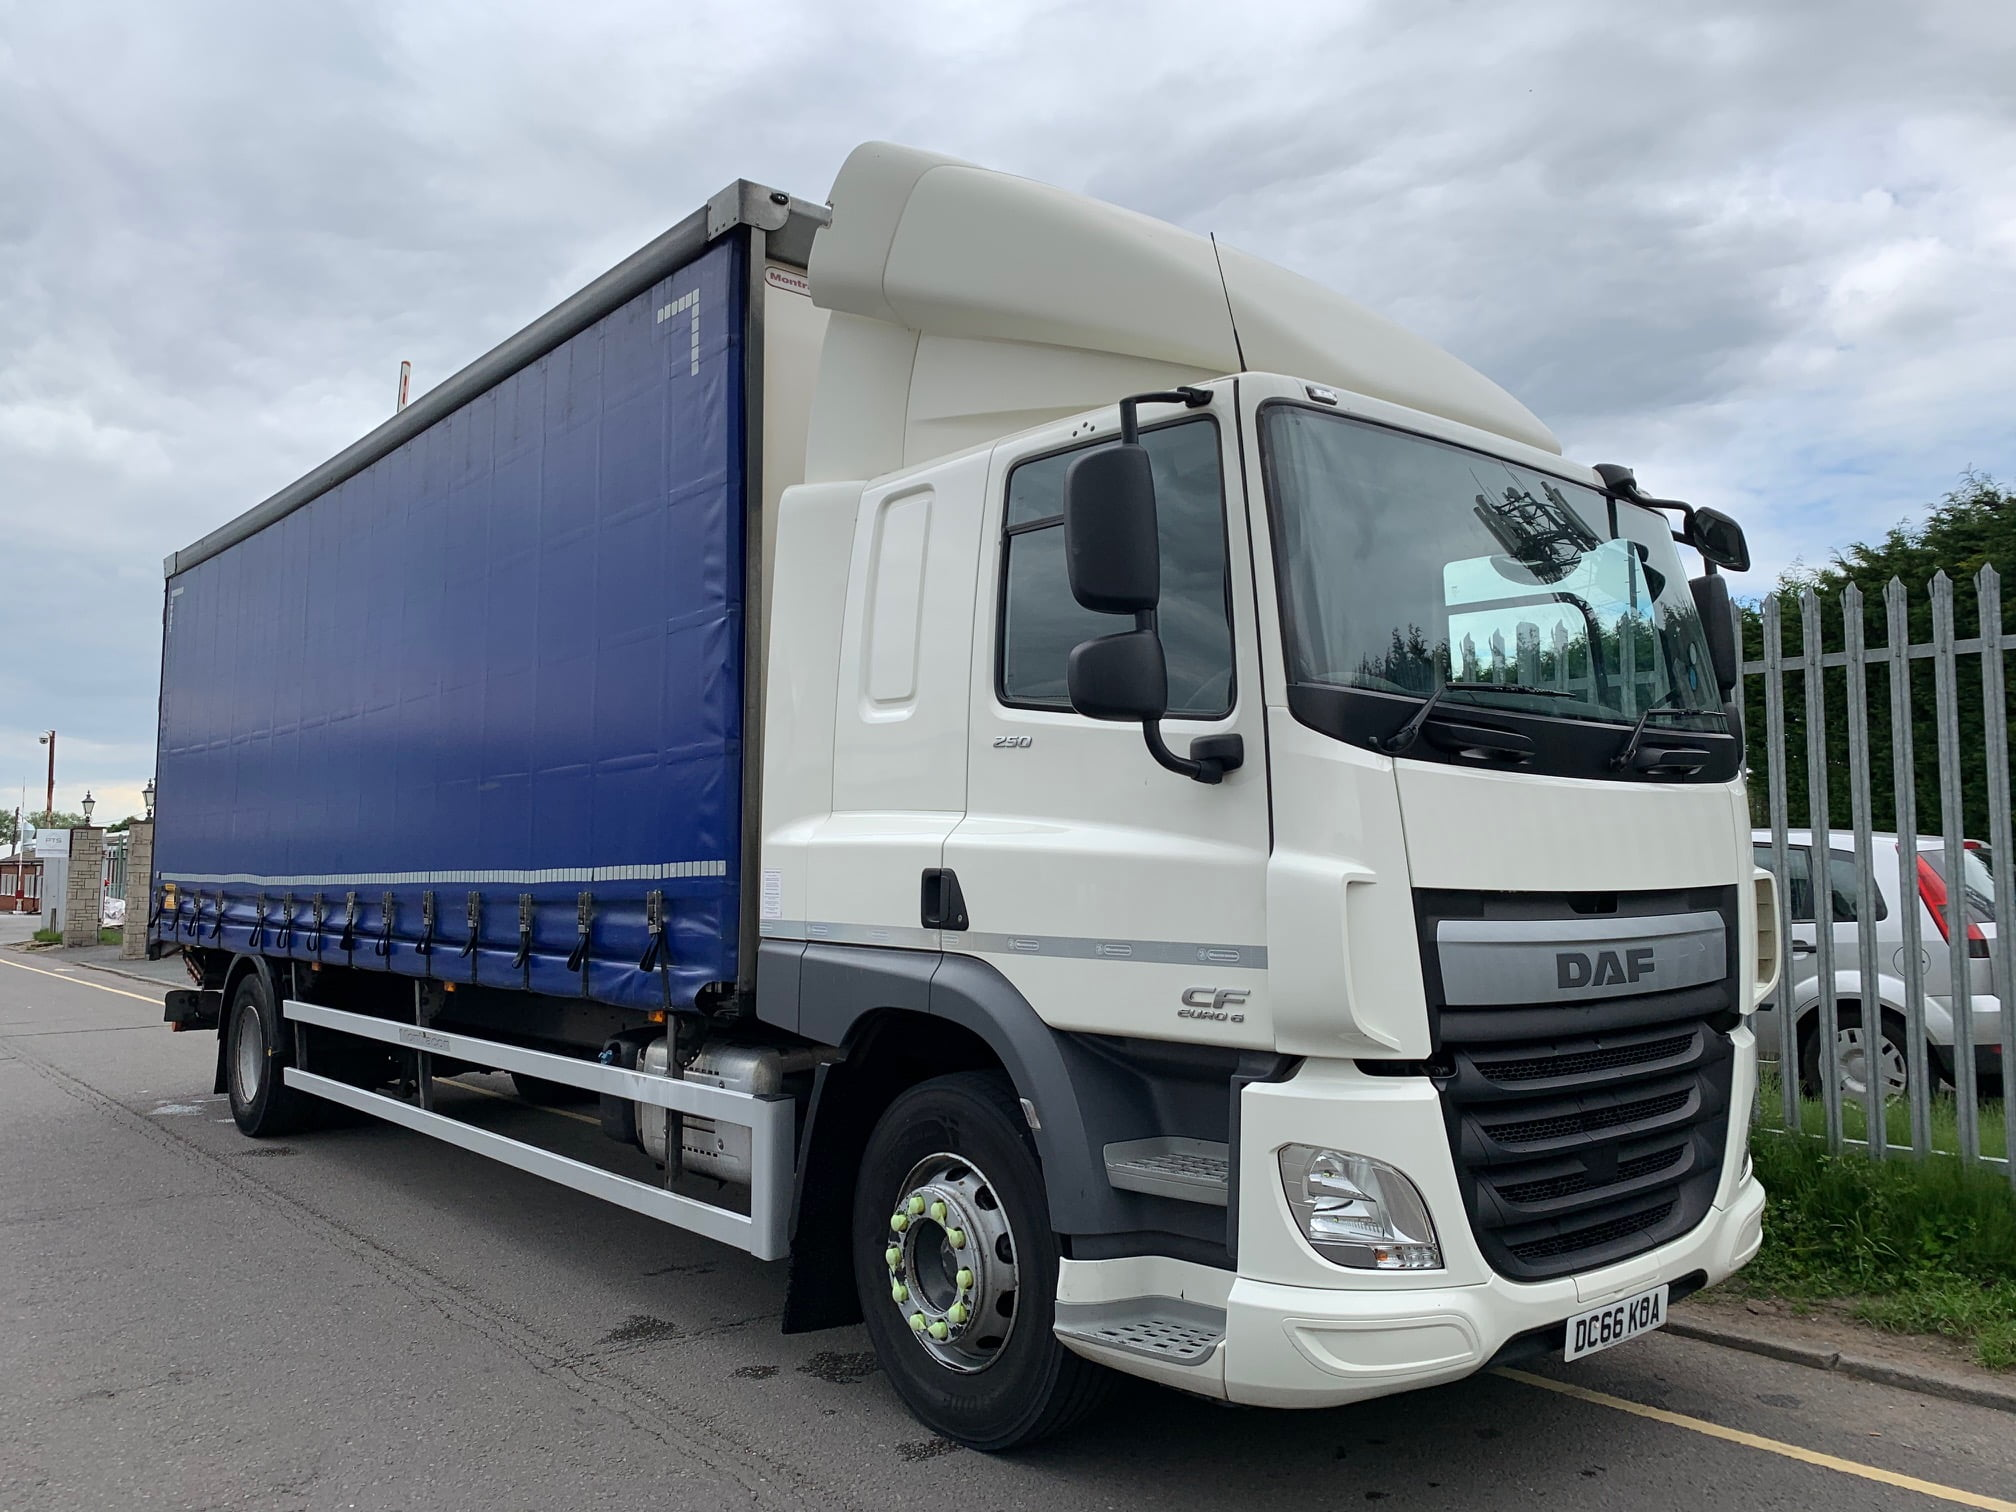 2016 (66) Daf Curtainsider, 18 Tonne, Dhollandia Tuckunder Tailift (1500KG Capacity), 27 Foot ENXL Rated Body, Internal Lights & Straps, Euro 6, 250bhp, AS Tronic Automatic Gearbox, Tailift Barriers, Xtra Comfort Mattress, Choice & Warranty Available.